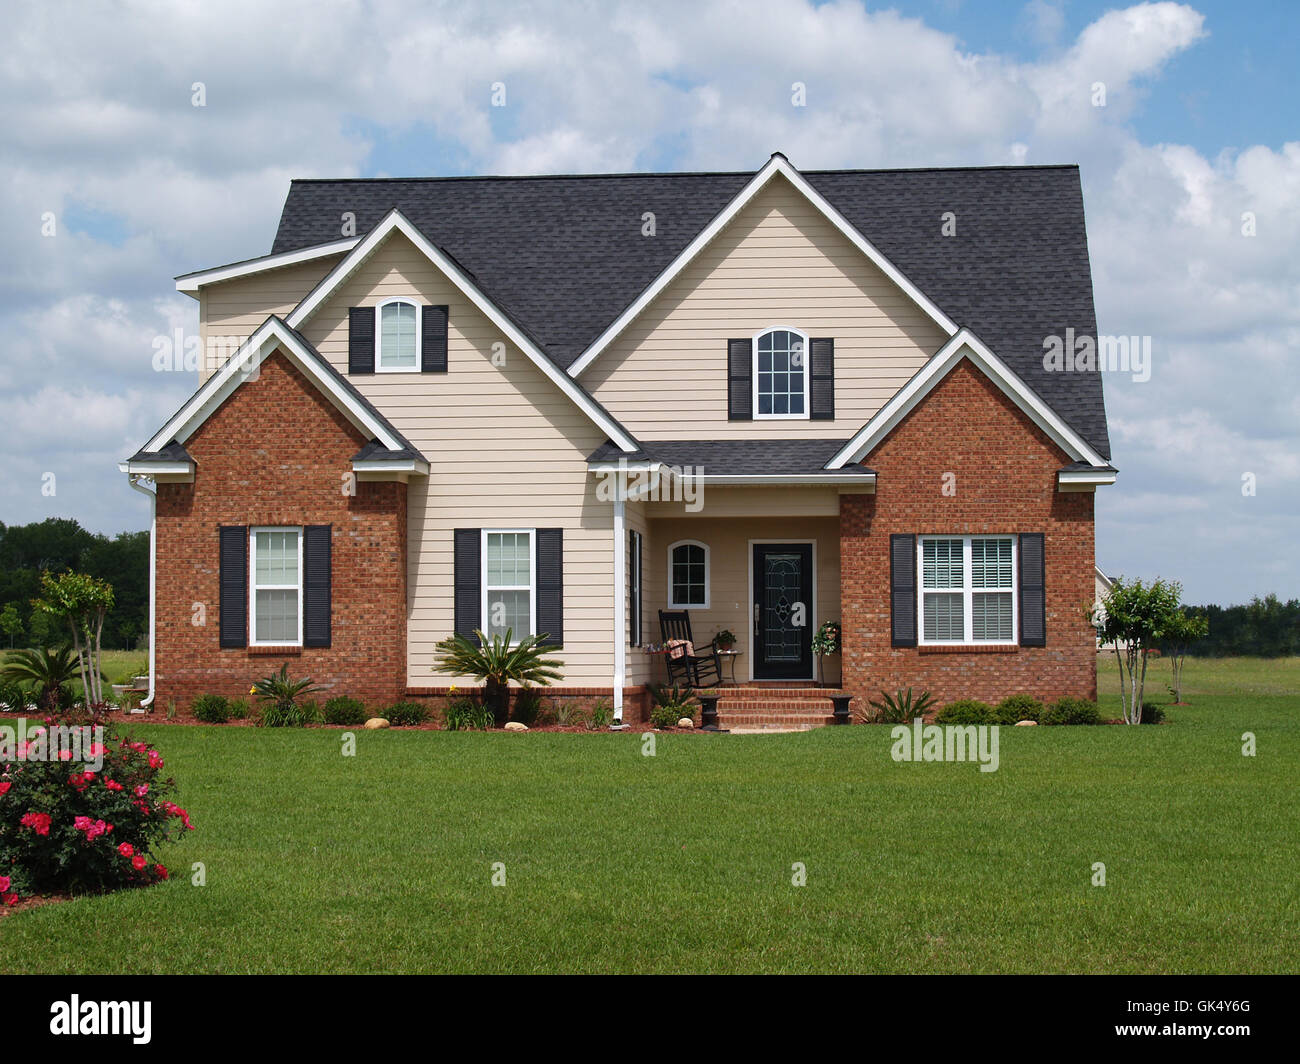 Shutters brick building facade stock photos shutters for Brick house construction